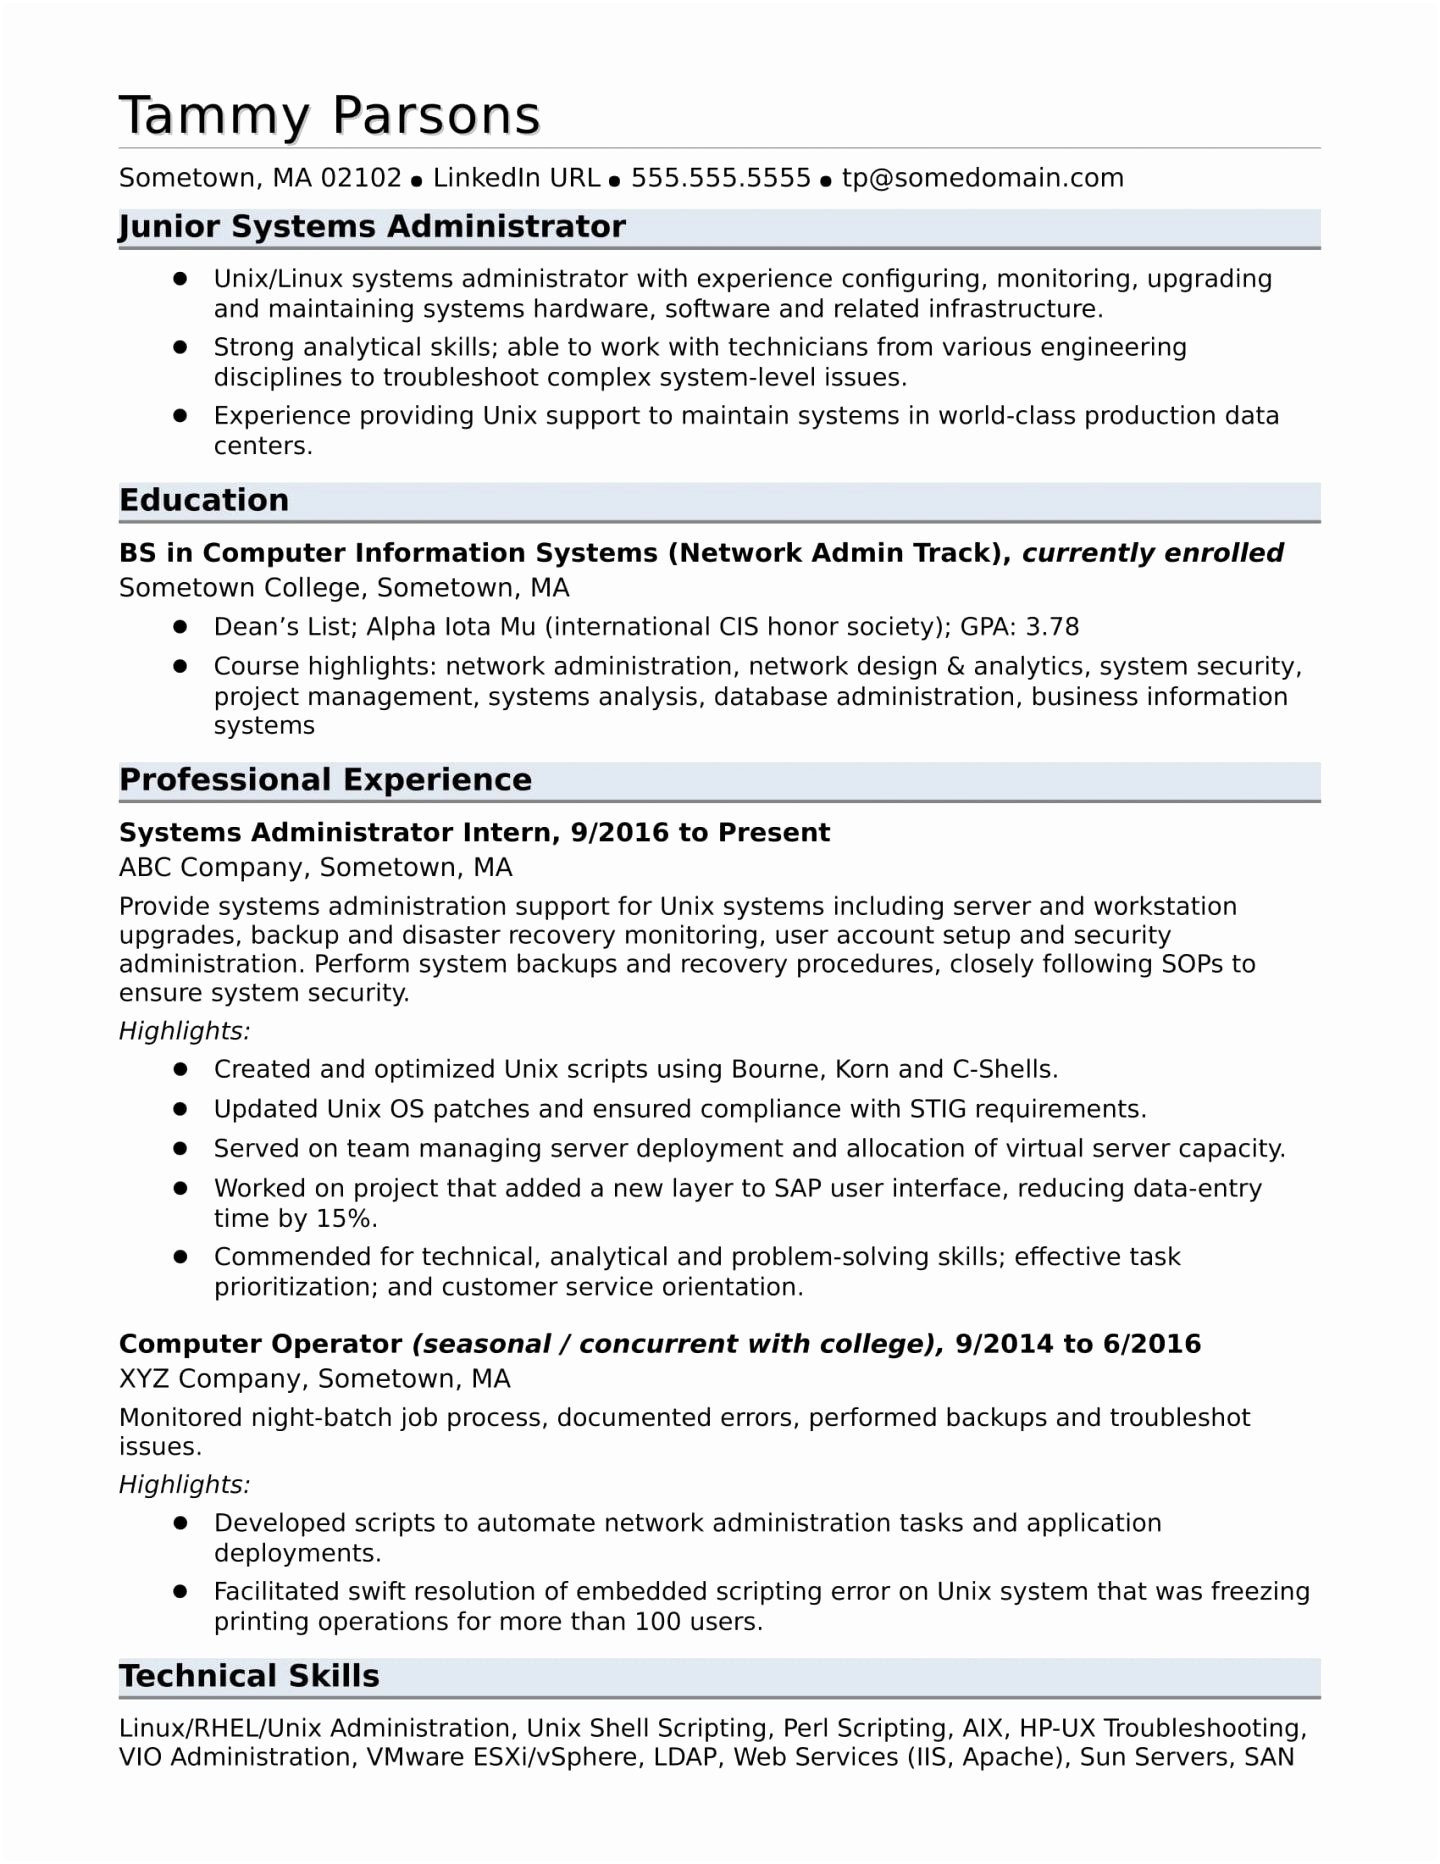 utd resume template Collection-Junior Web Developer Resume Utd Resume Template Unique Fishing Resume 0d 9-d